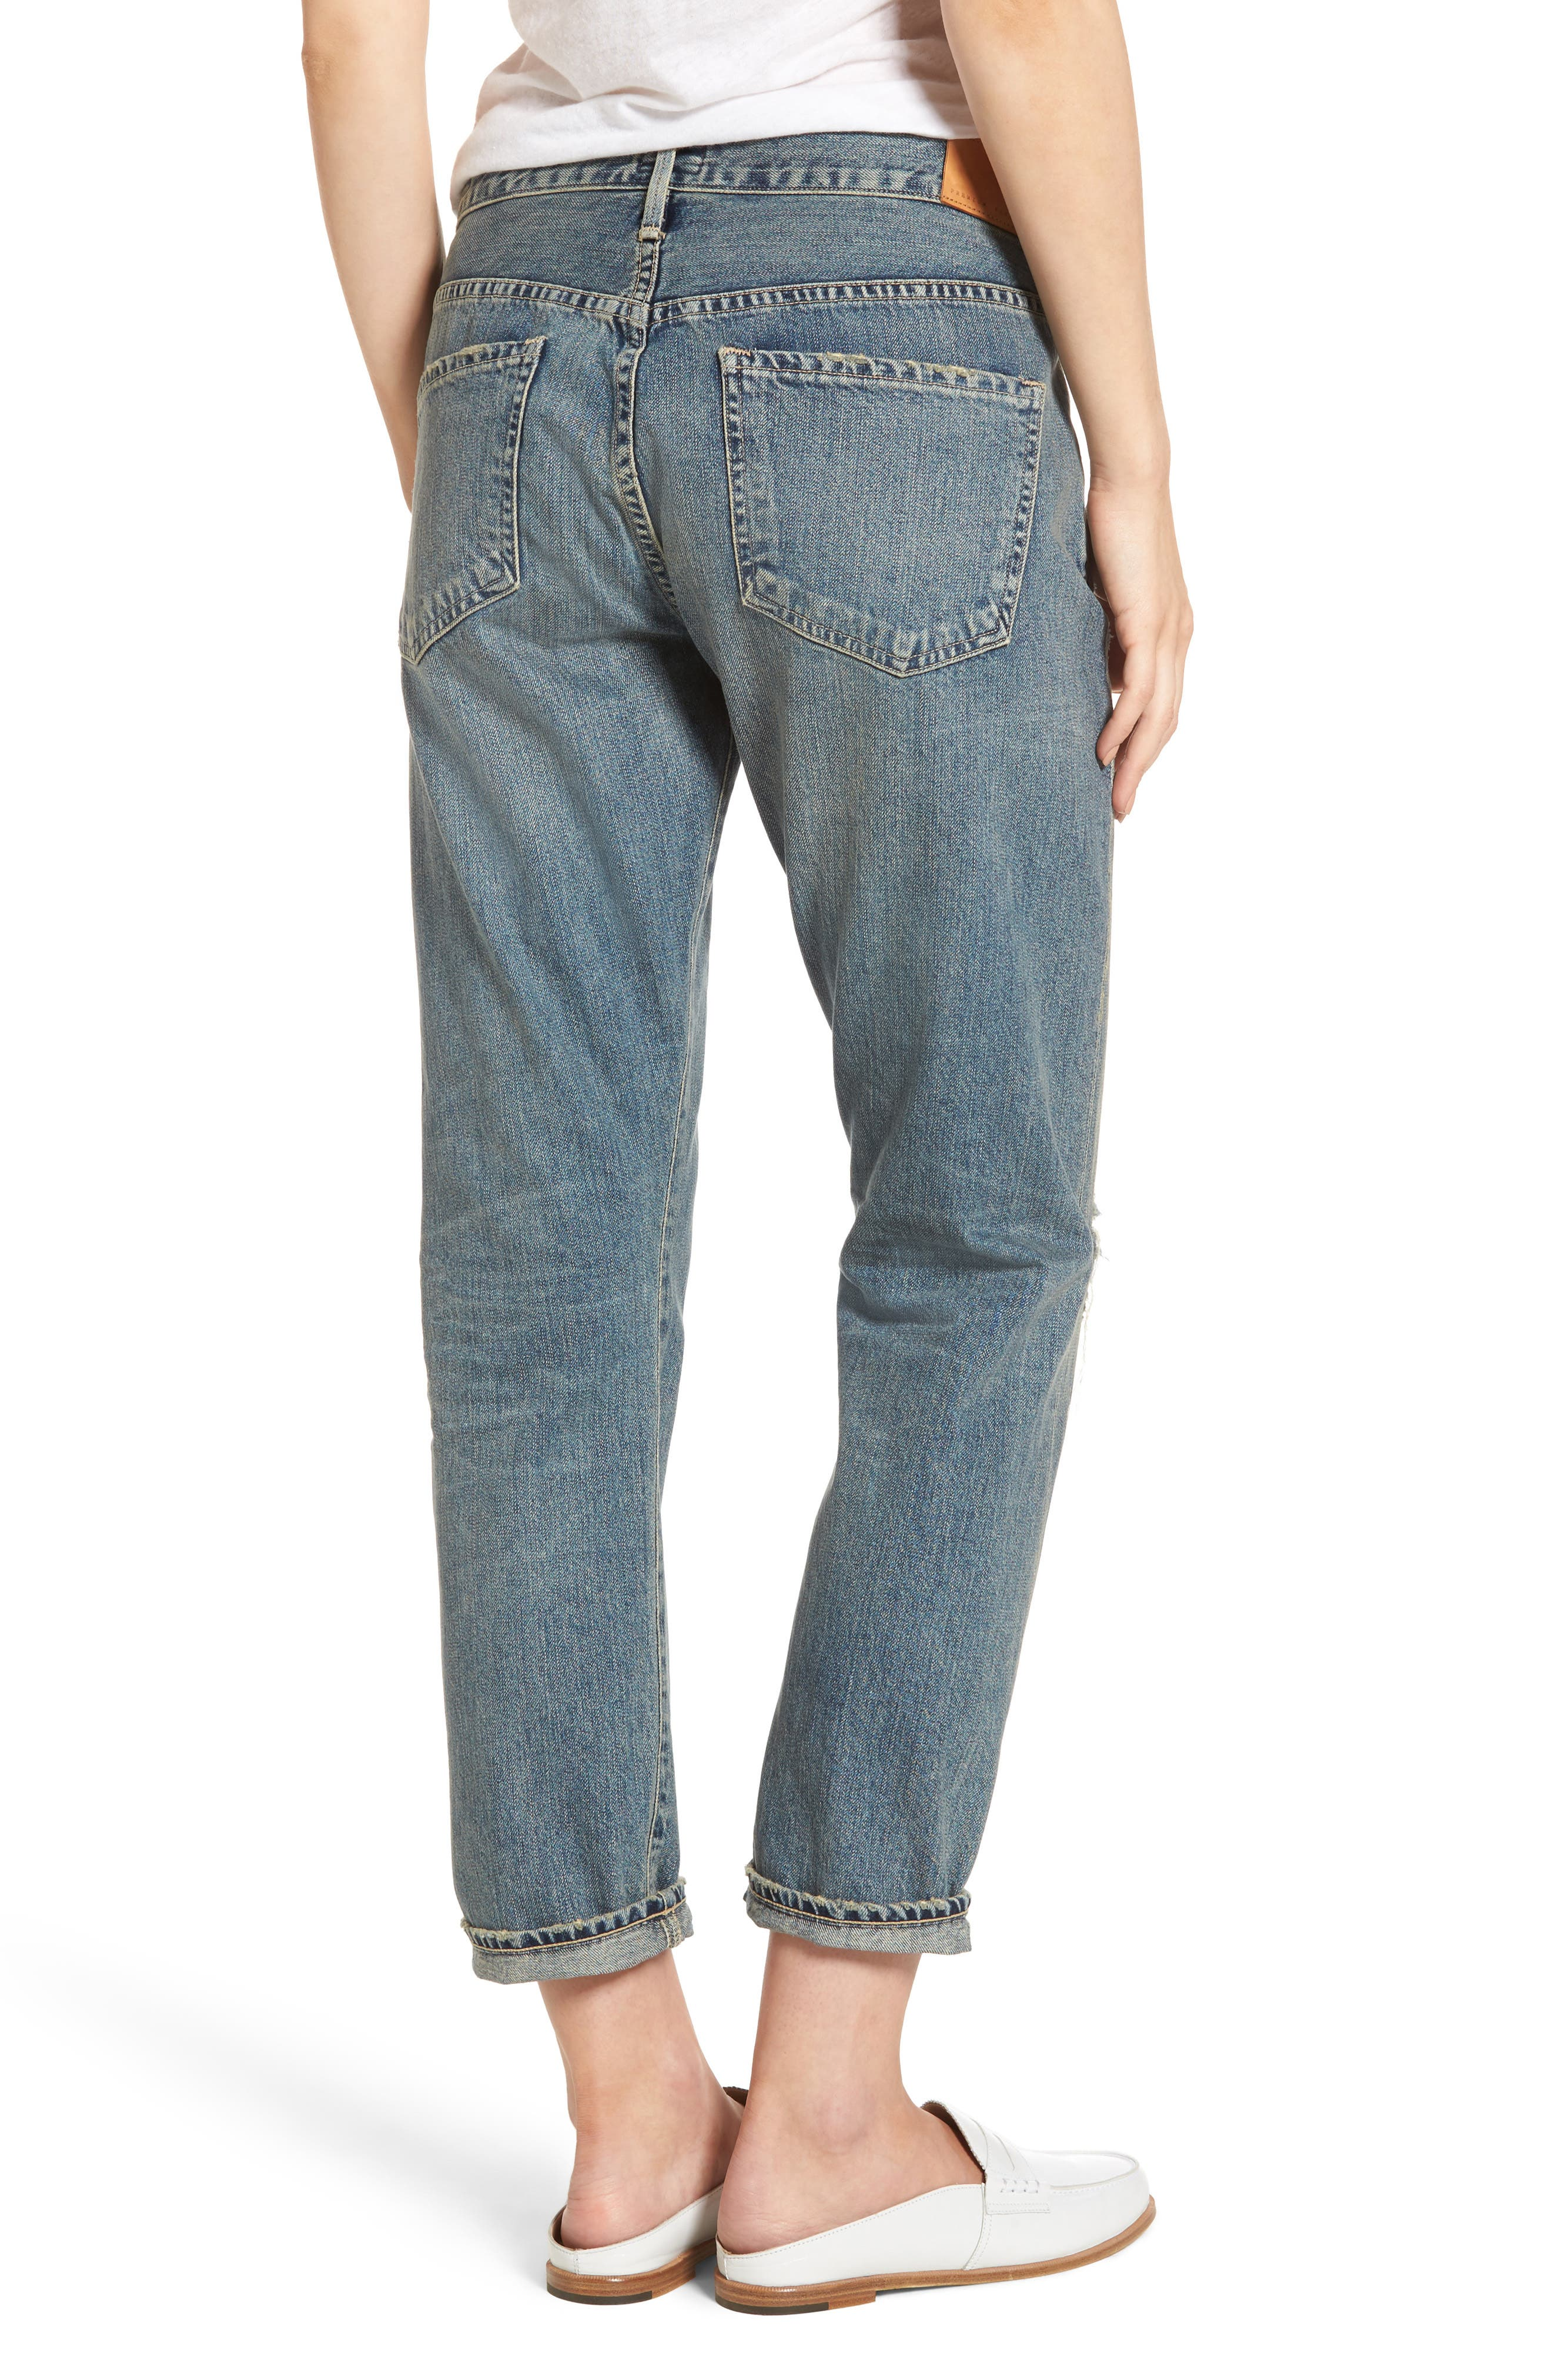 Alternate Image 2  - Citizens of Humanity Emerson Ripped Slim Boyfriend Jeans (Norlander)